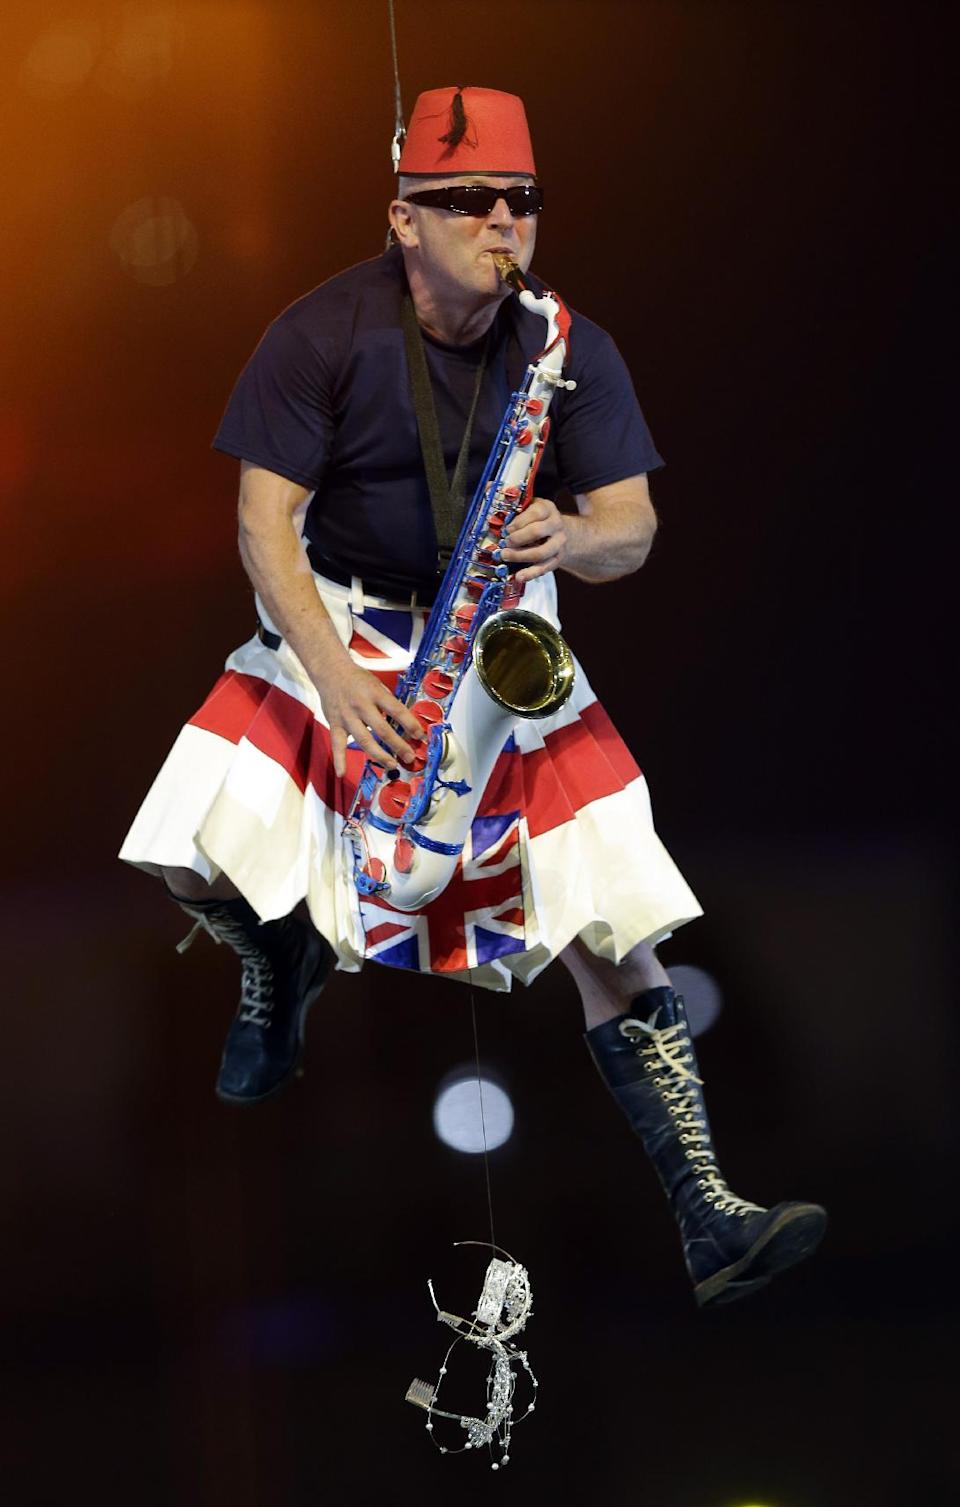 Lee Thompson of Madness performs during the Closing Ceremony at the 2012 Summer Olympics, Sunday, Aug. 12, 2012, in London. (AP Photo/Charlie Riedel)